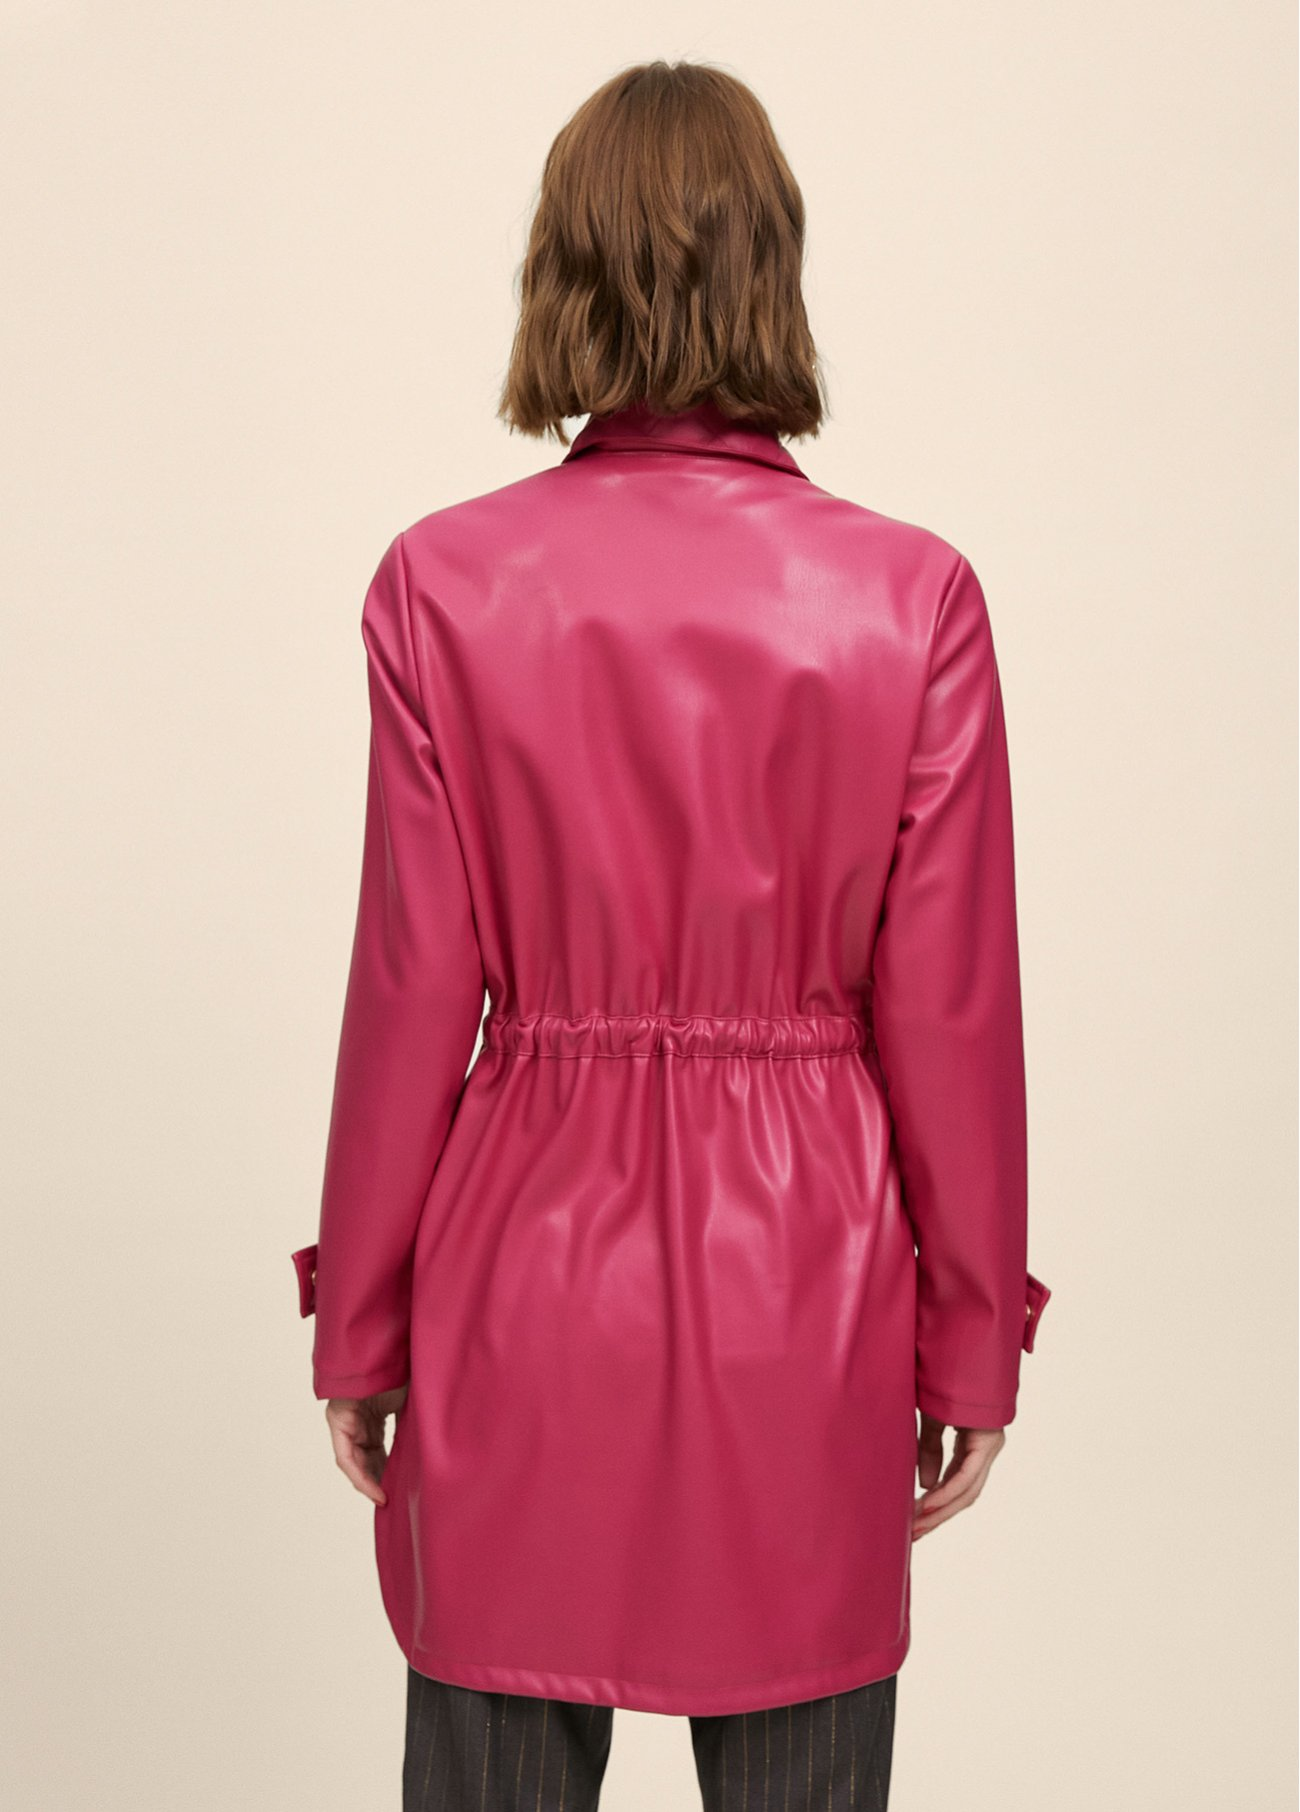 Jacket with details at front pockets and